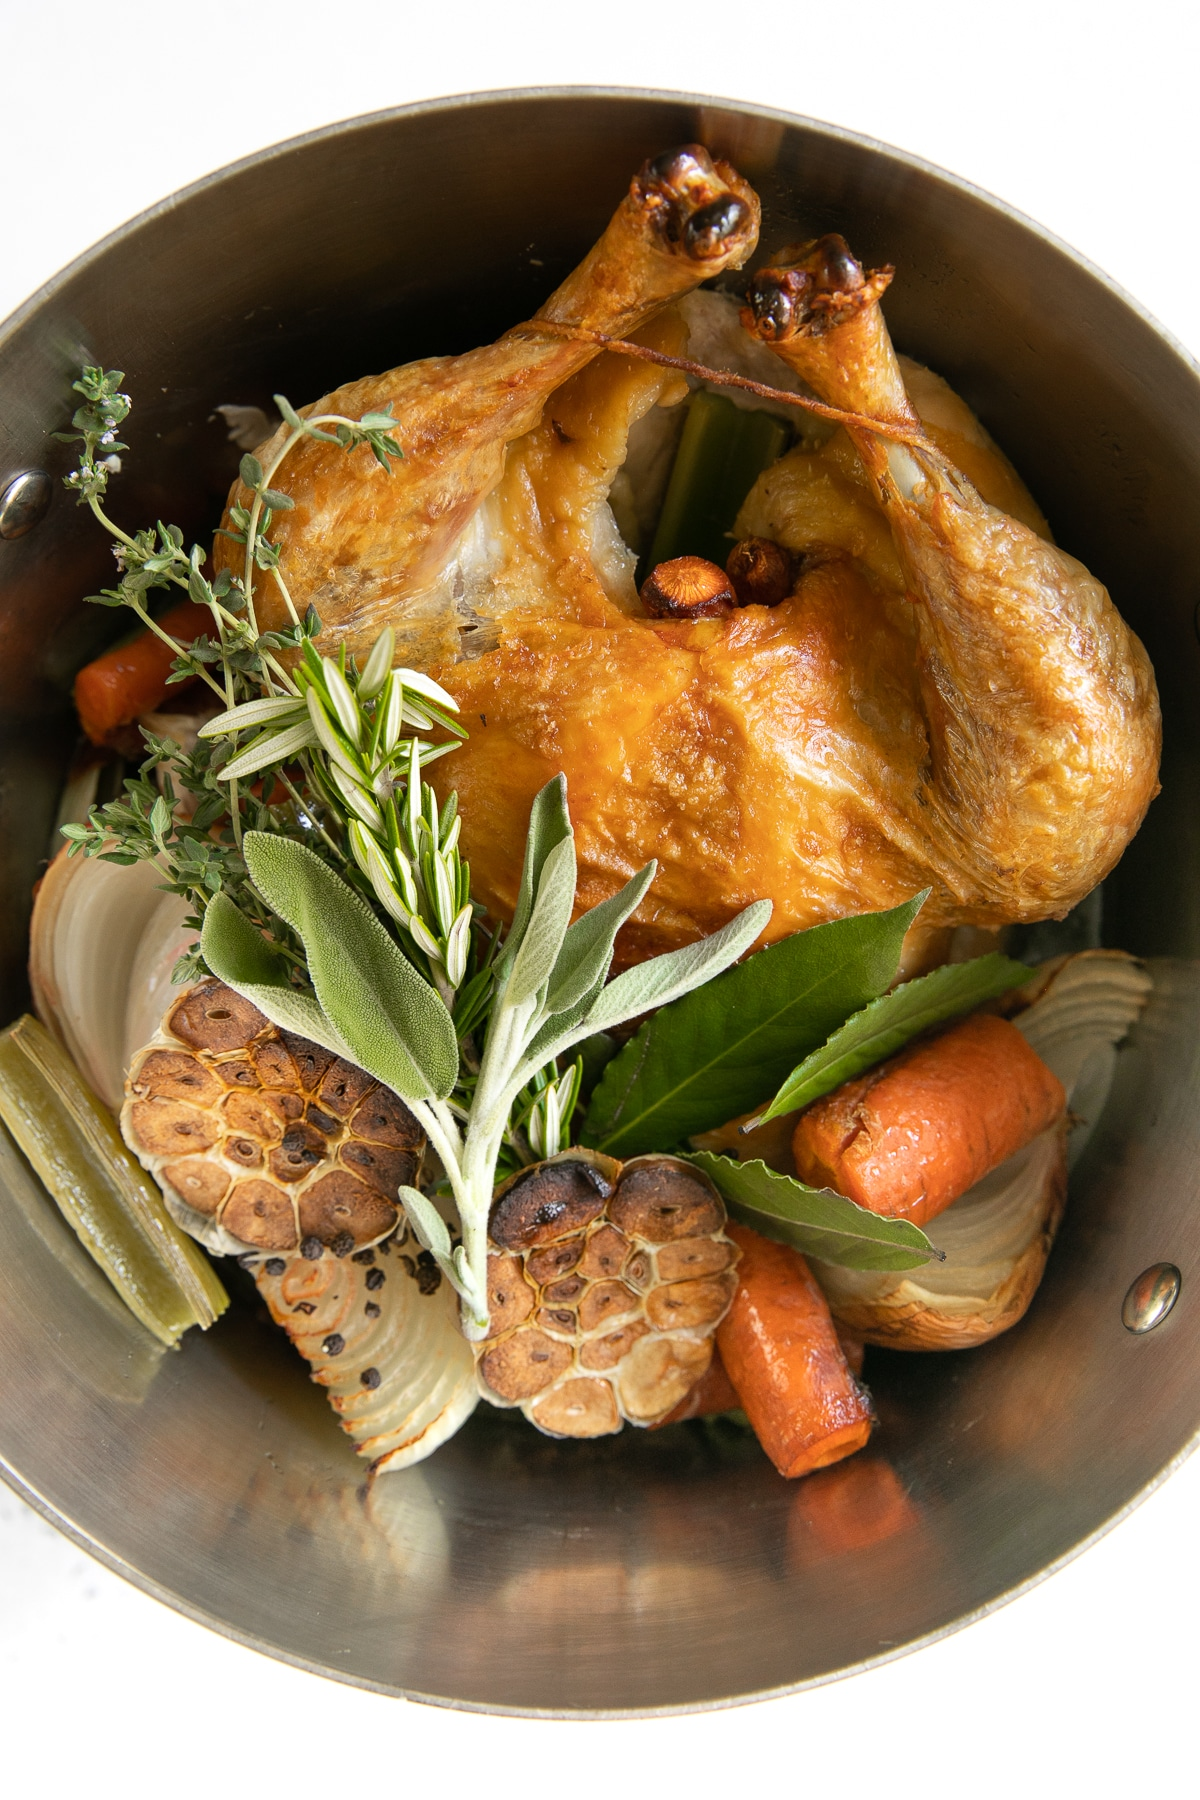 Large stock pot filled with one whole browned chicken, garlic, vegetables, and fresh herbs.